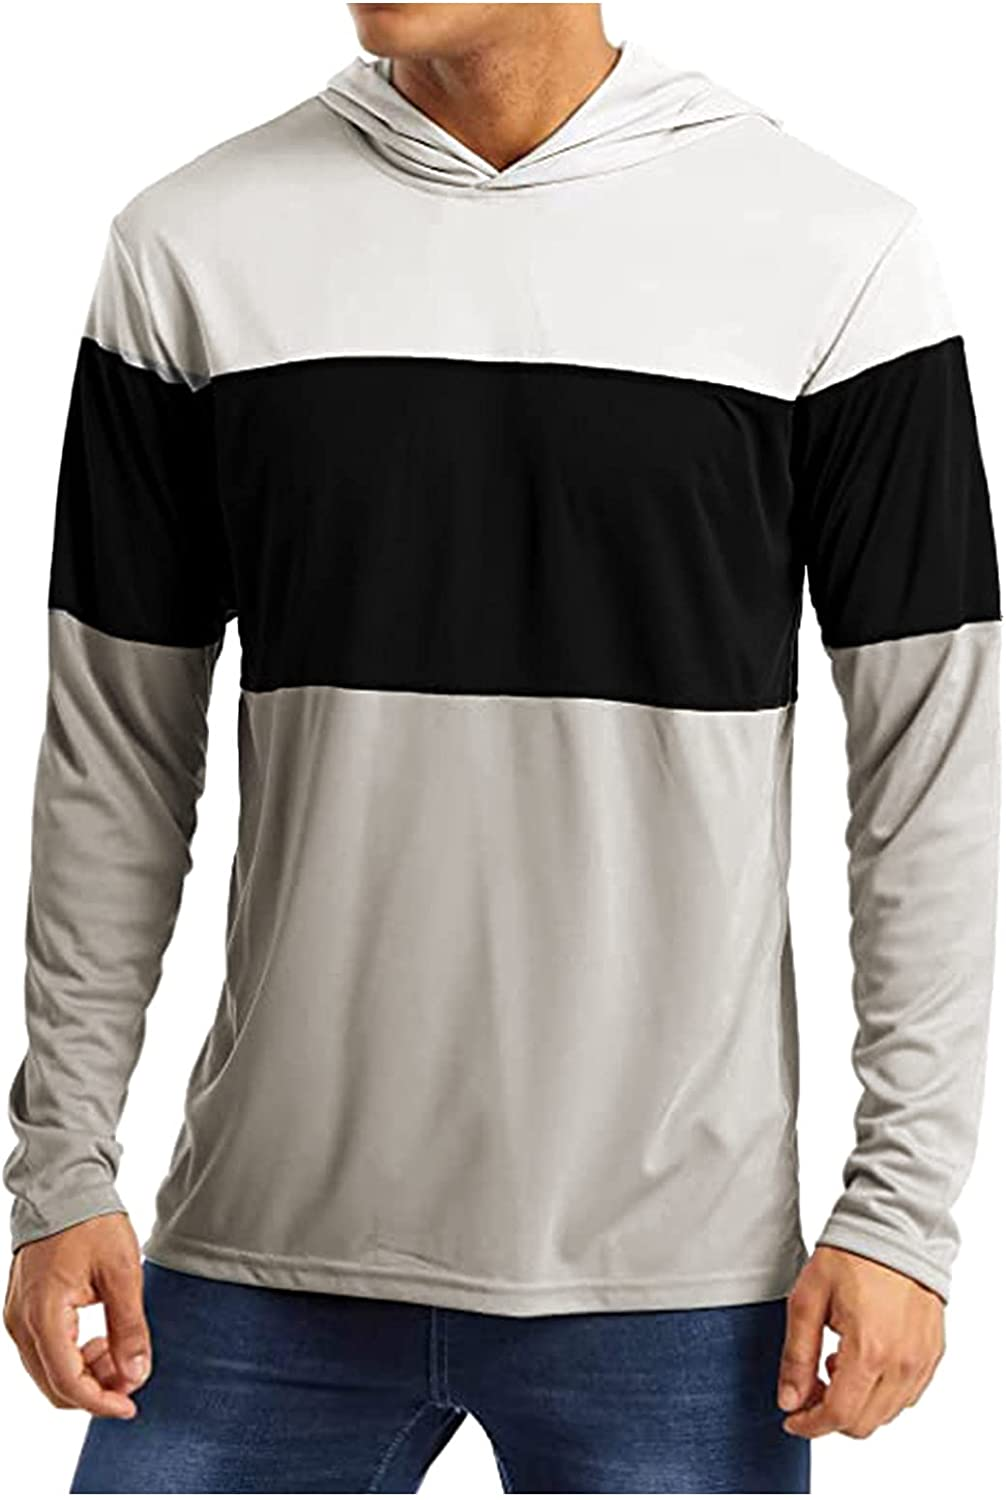 Tops for Now on sale Men Basic Solid Color Jacket Long Selling Sleeve Hooded Fashion